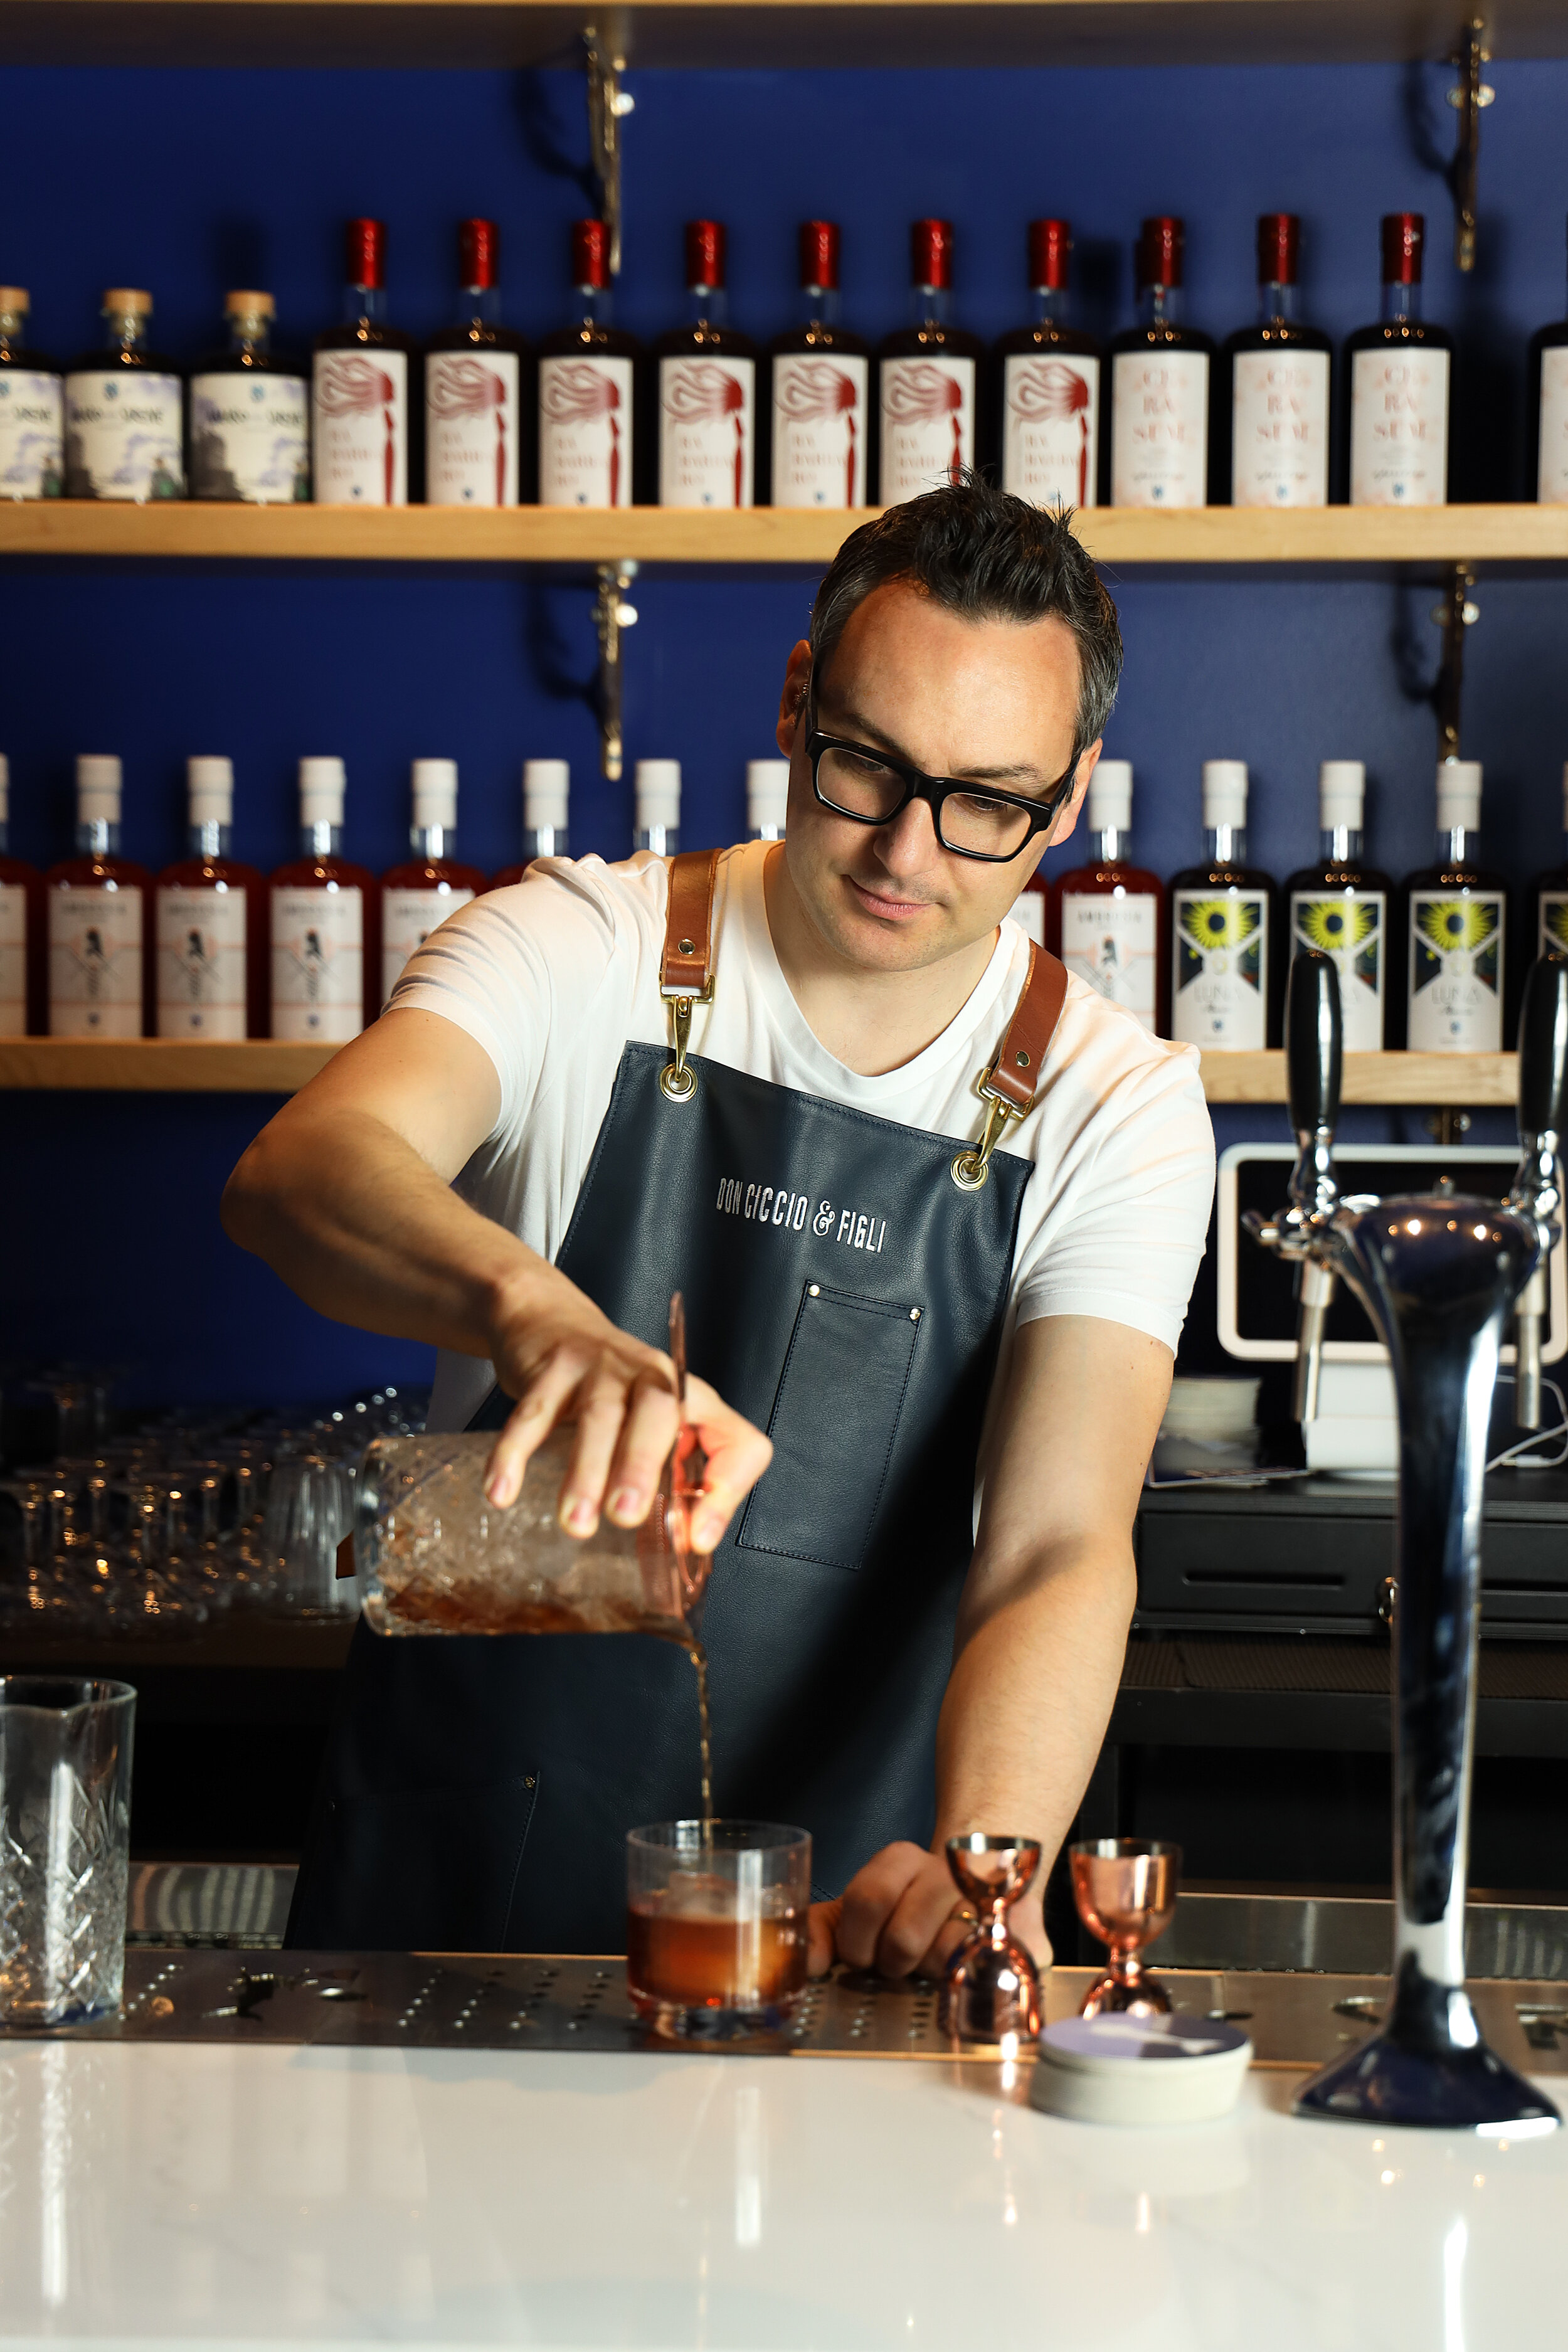 For a taste of Italian tradition, visit Francesco Amodeo and his Bar Sirenis, the home of Don Ciccio & Figli this weekend. Open from 1 - 8 p, the tasting room and distillery is located in Ivy City at 1907 Fairview Ave NE.